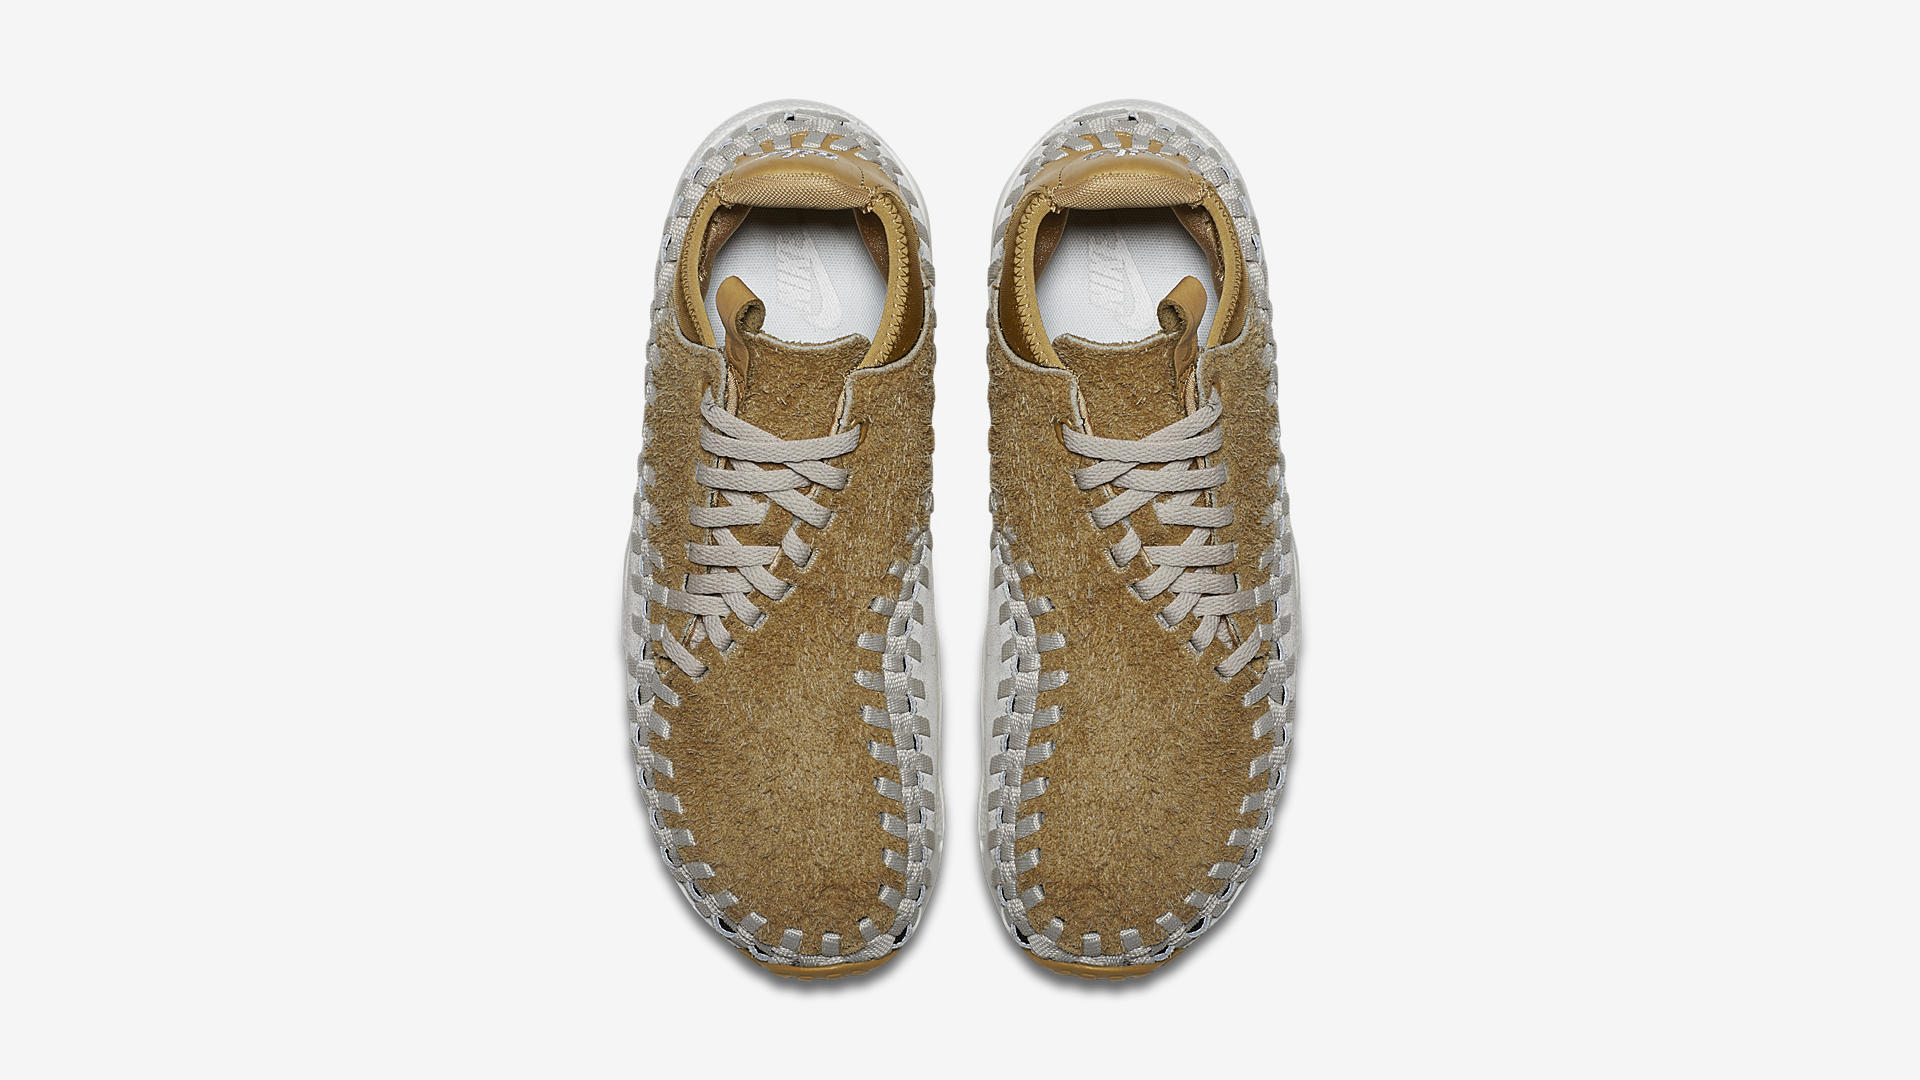 Nike Air Footscape Woven Chukka Flat Gold 913929 700 3